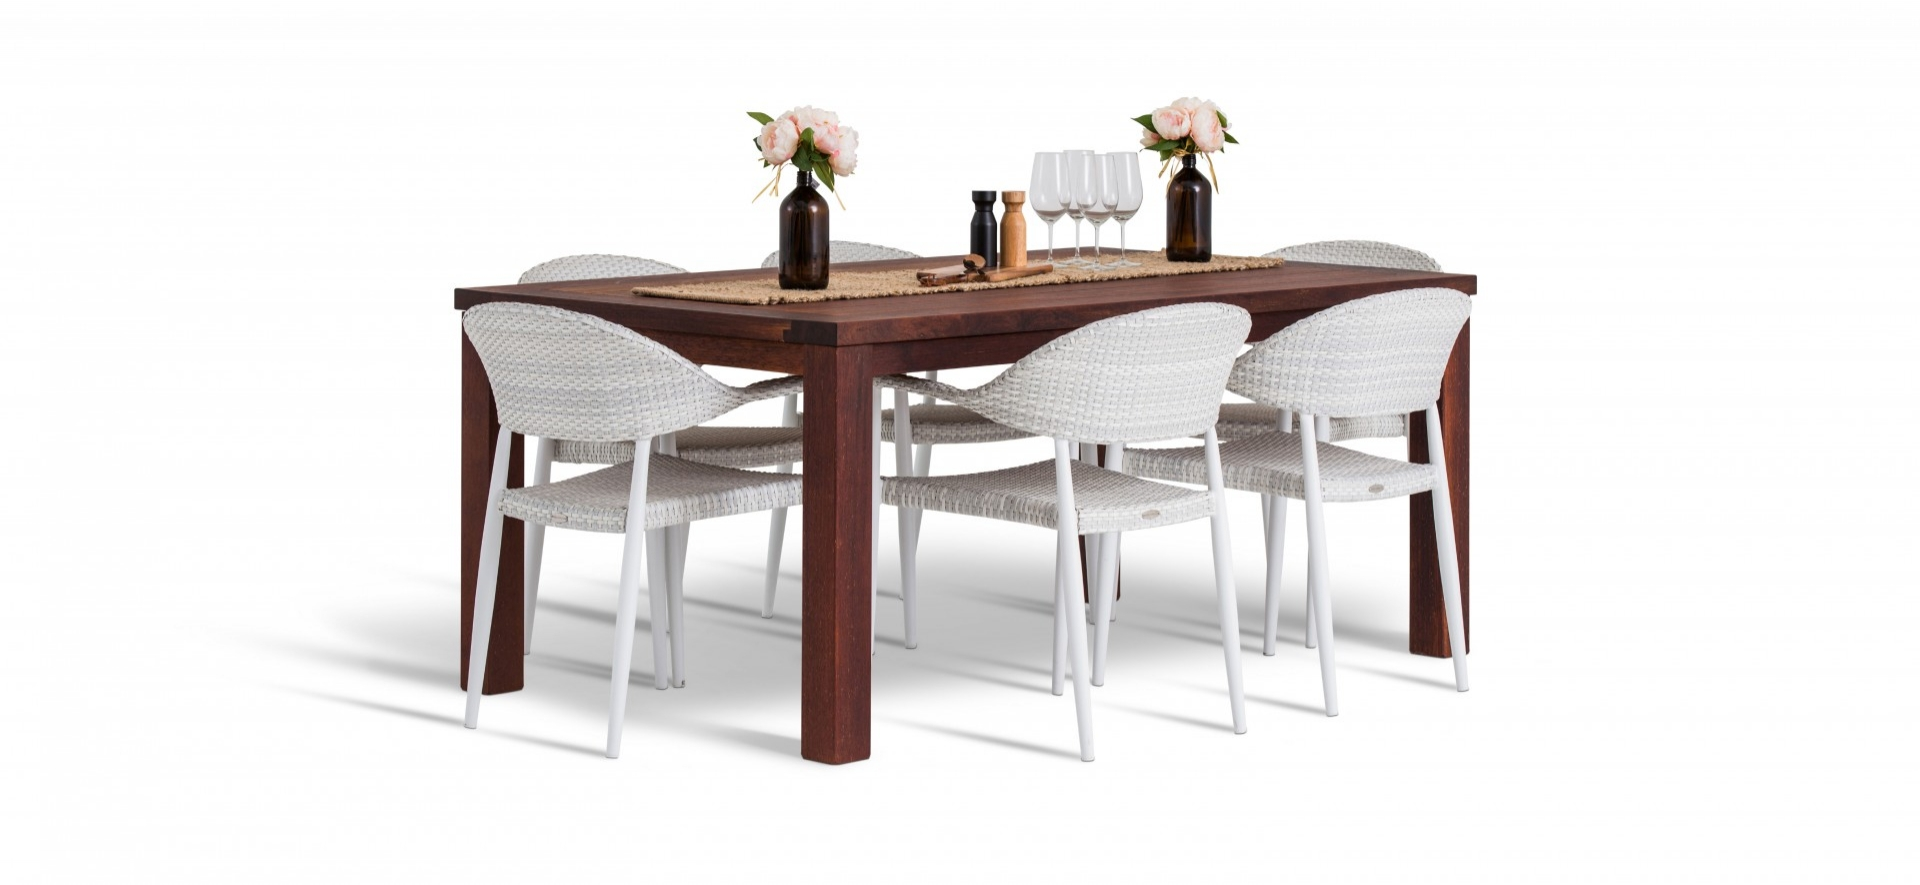 Rio Outdoor Chairs with Kwila Table